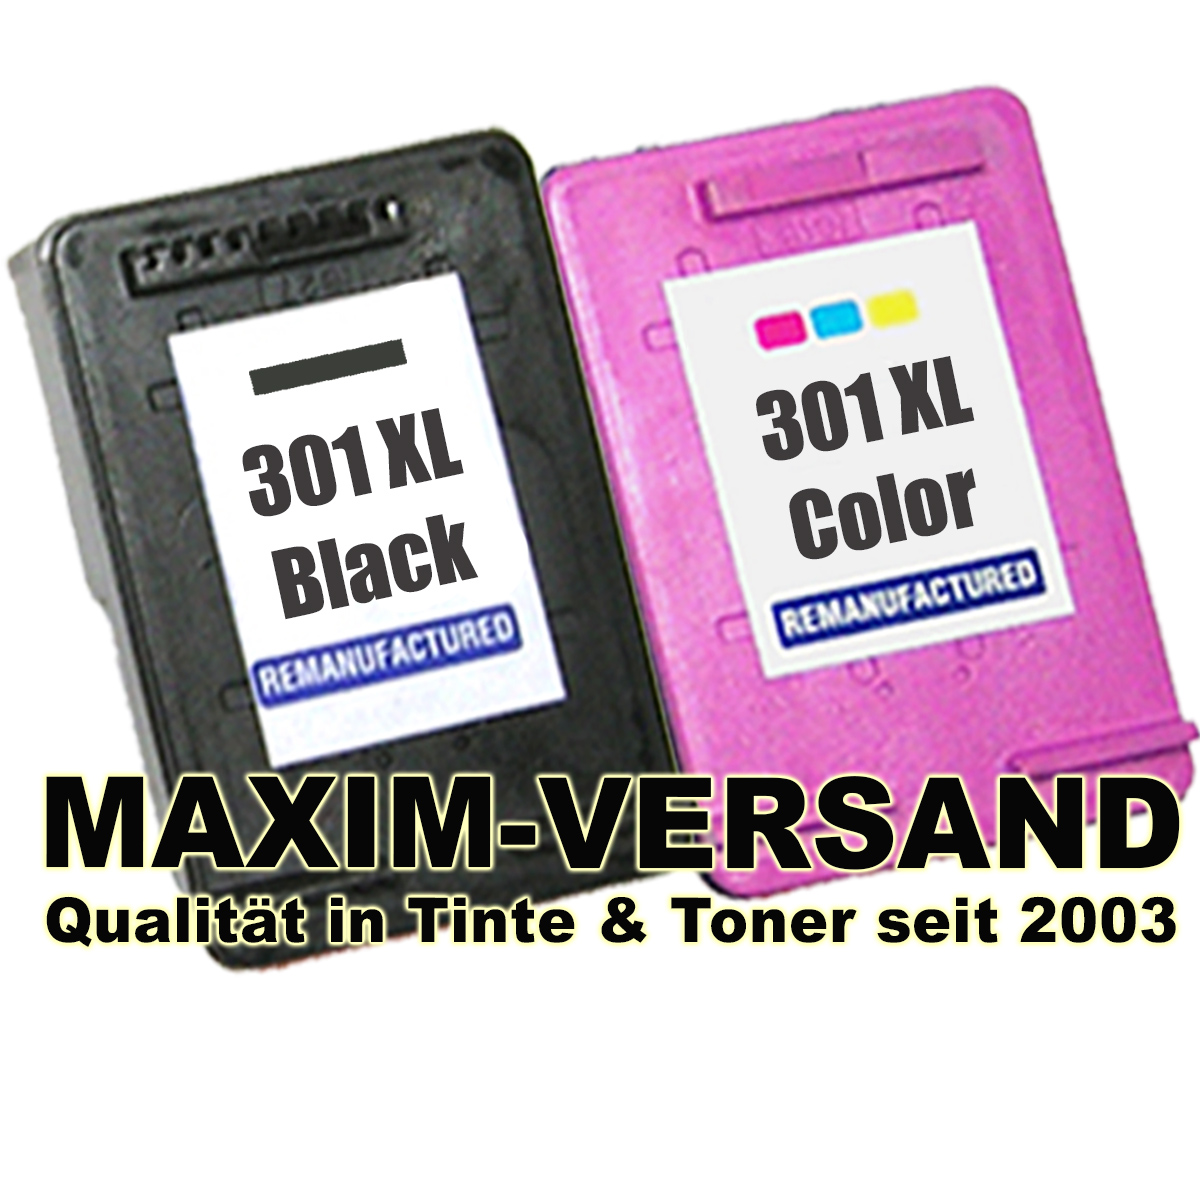 HP 301 XL Black + HP 301 XL Color - kompatibel (2er Set)